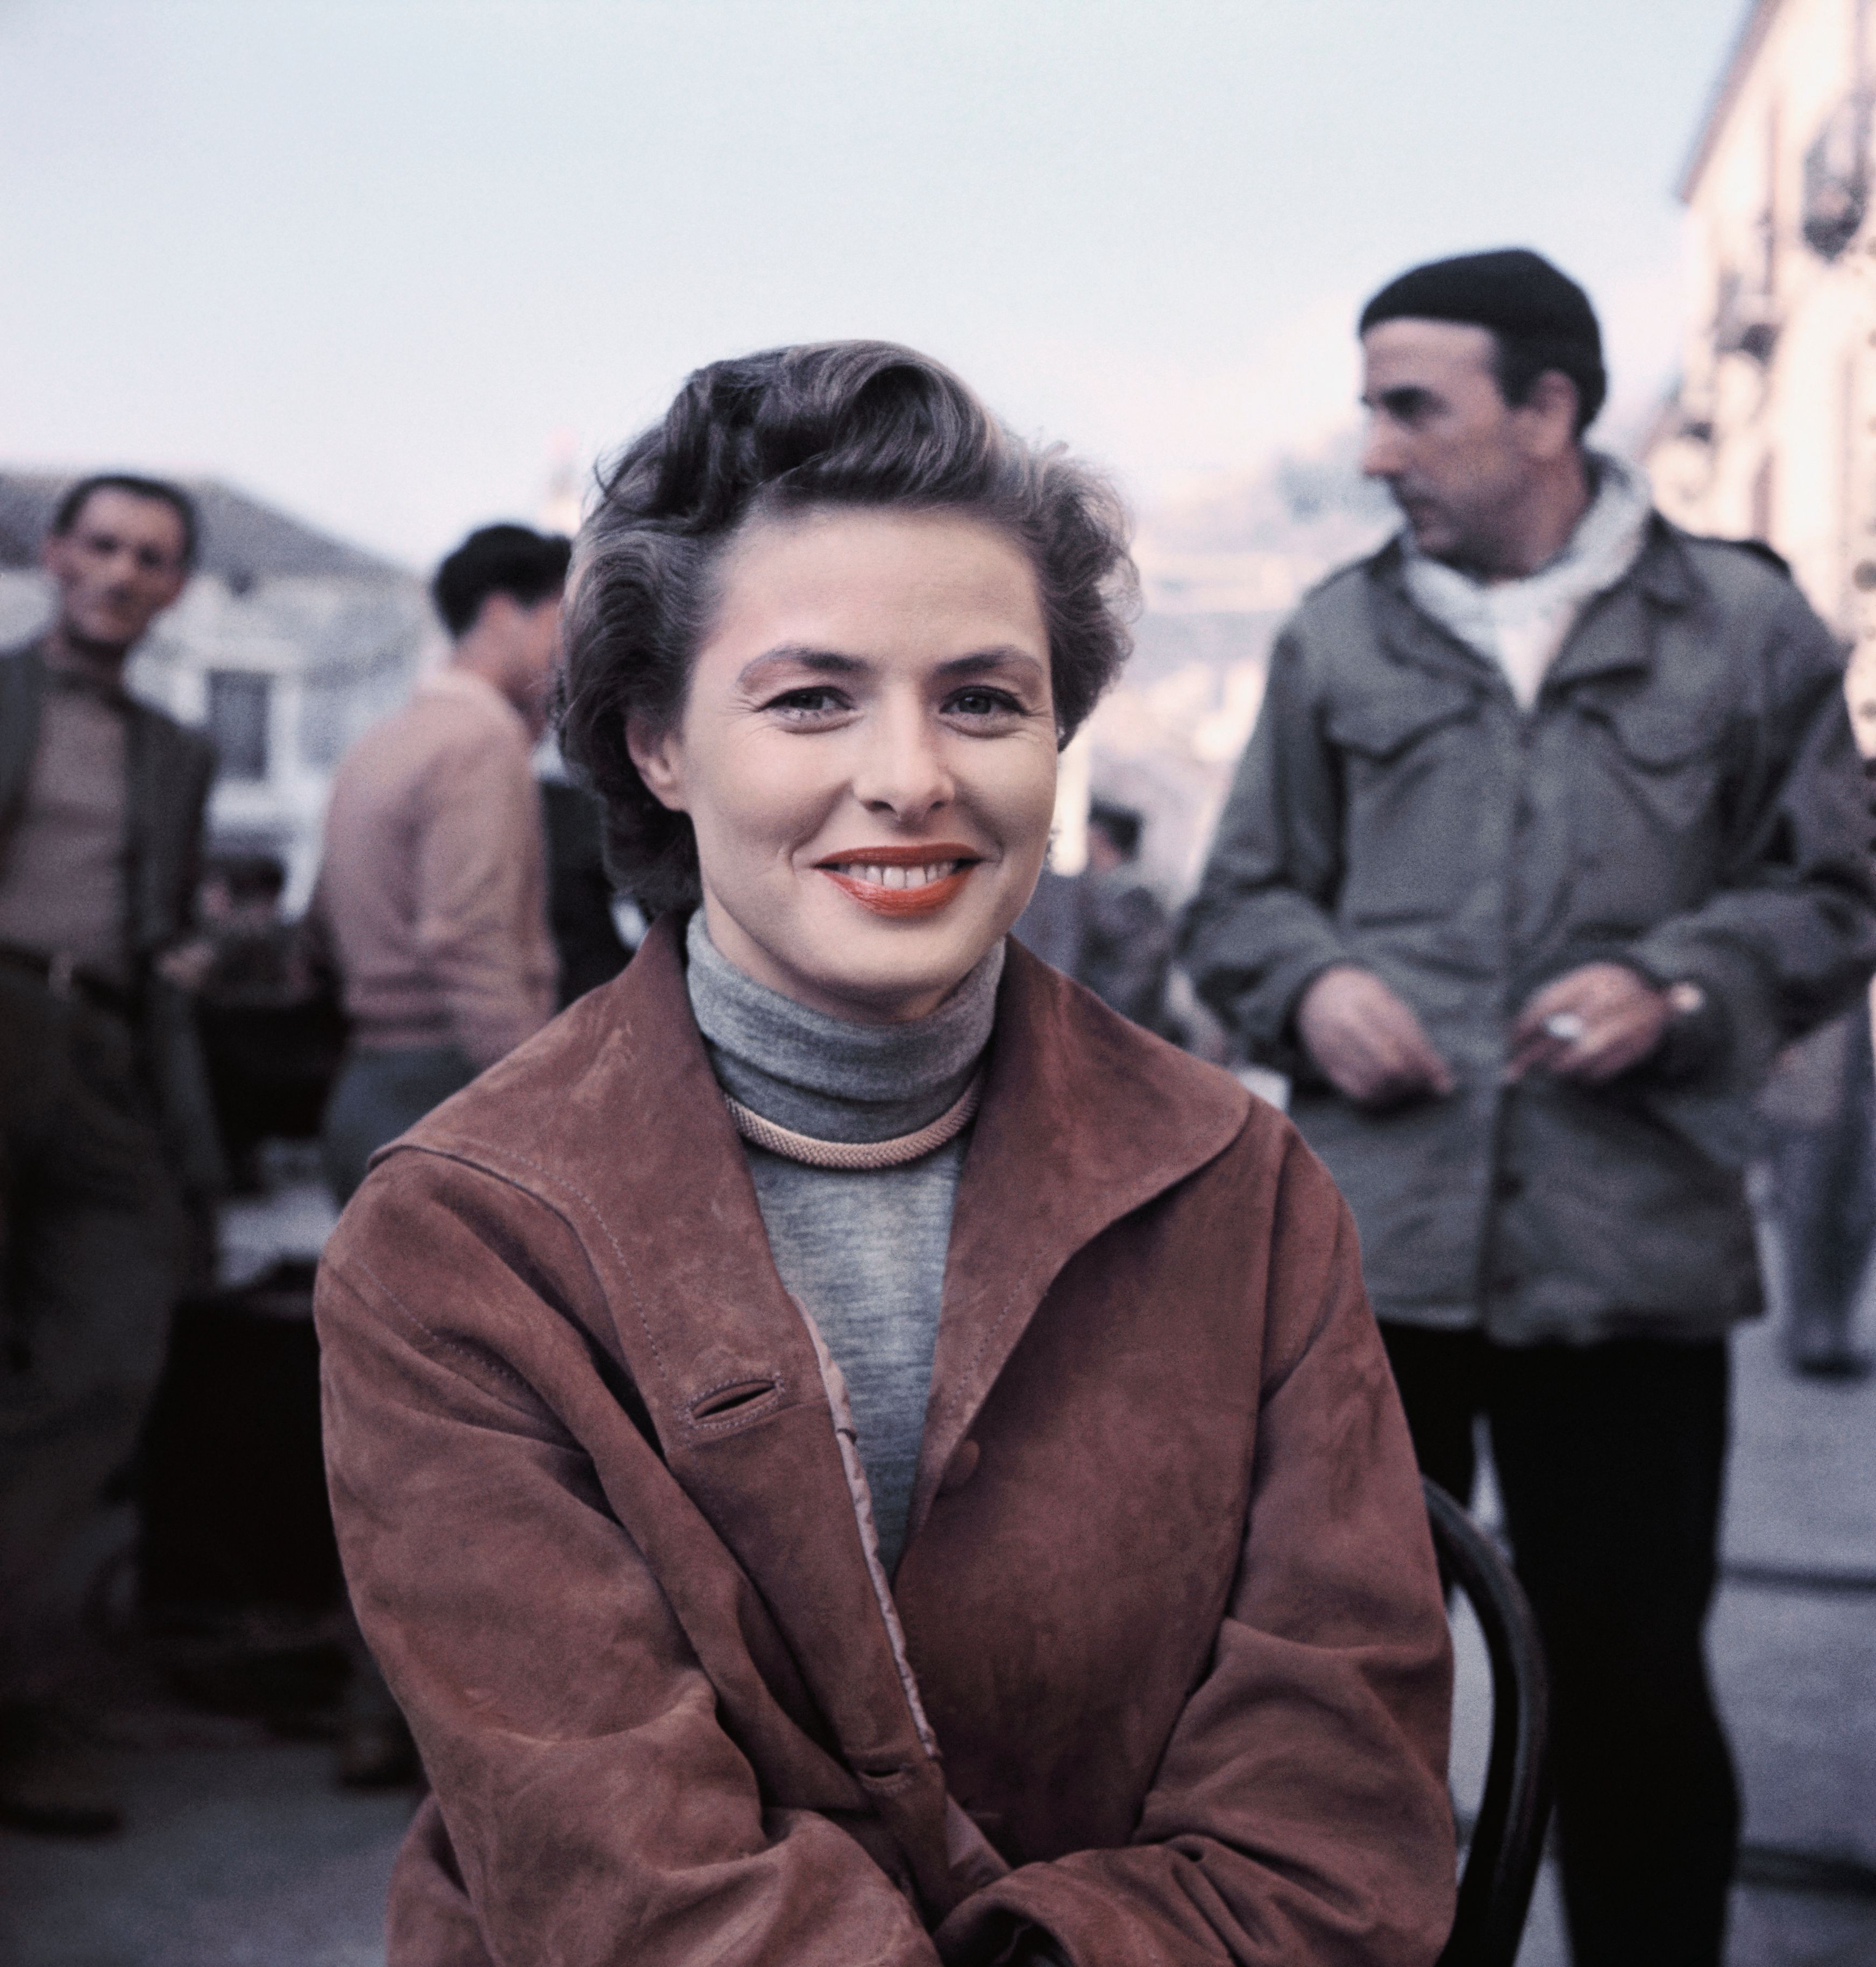 Ingrid Bergman, on the set of 'Journey to Italy', (aka 'Voyage to Italy'), directed by her husband, Roberto Rossellini, Naples, Italy, on April 01, 1953. | Photo: Getty Images